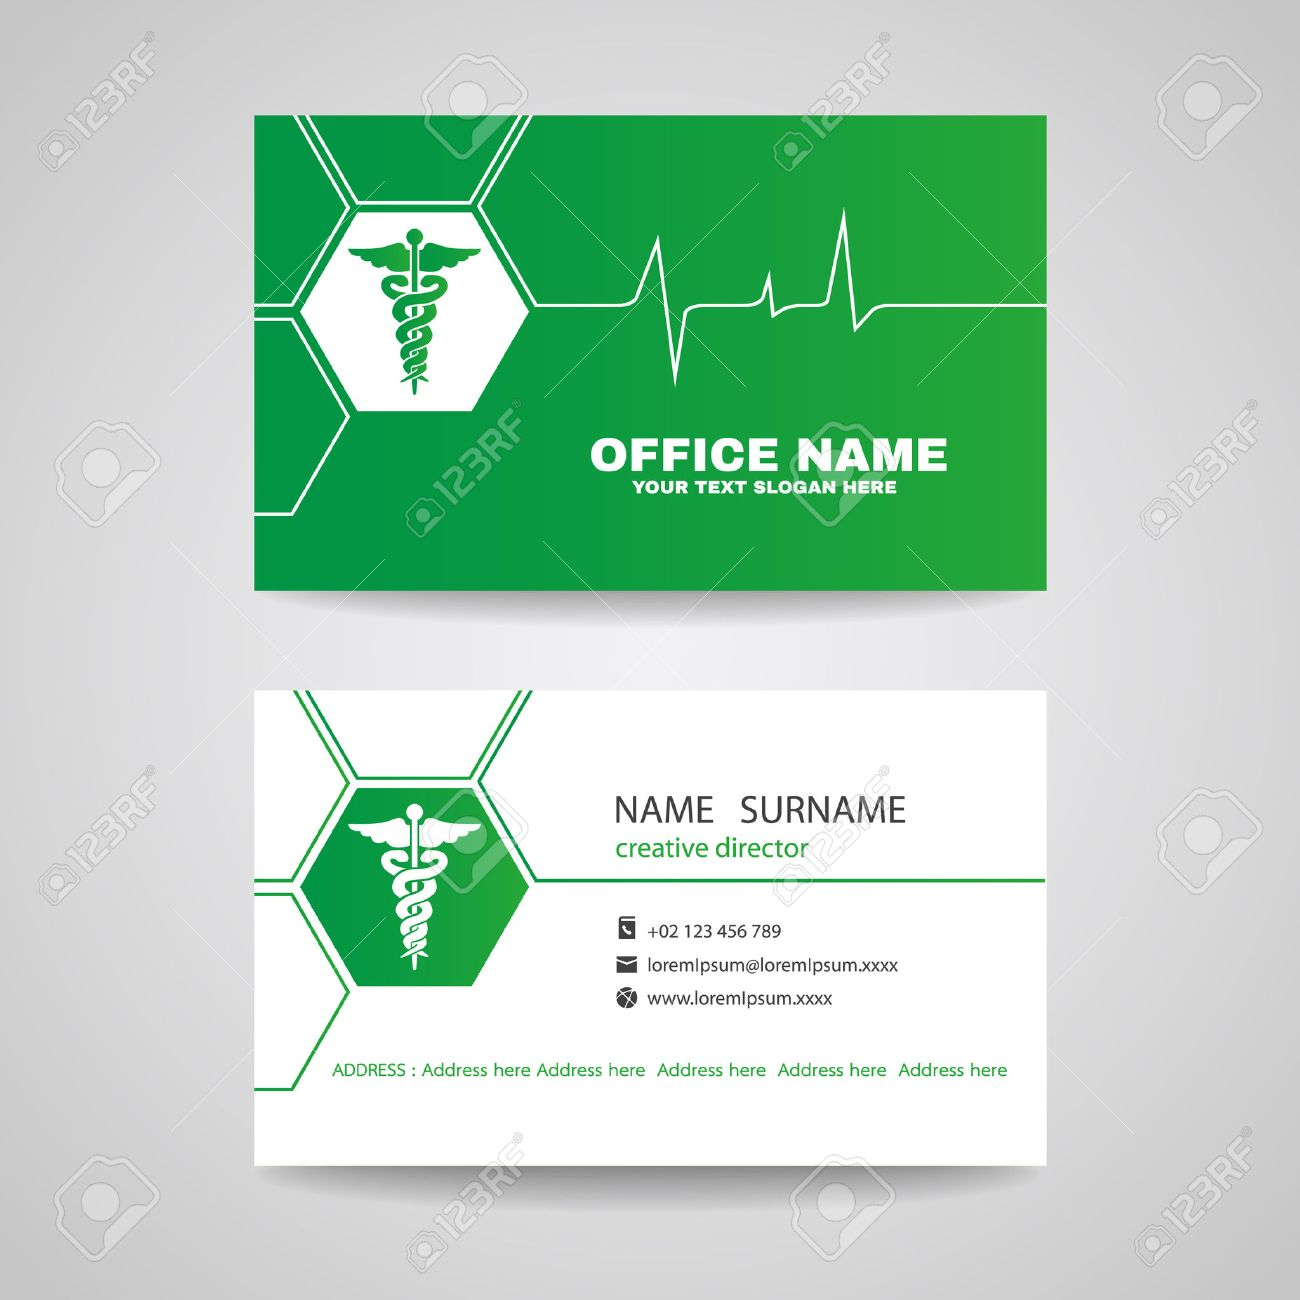 Business Card For Medical Healthcare - Green Caduceus And Waves ...